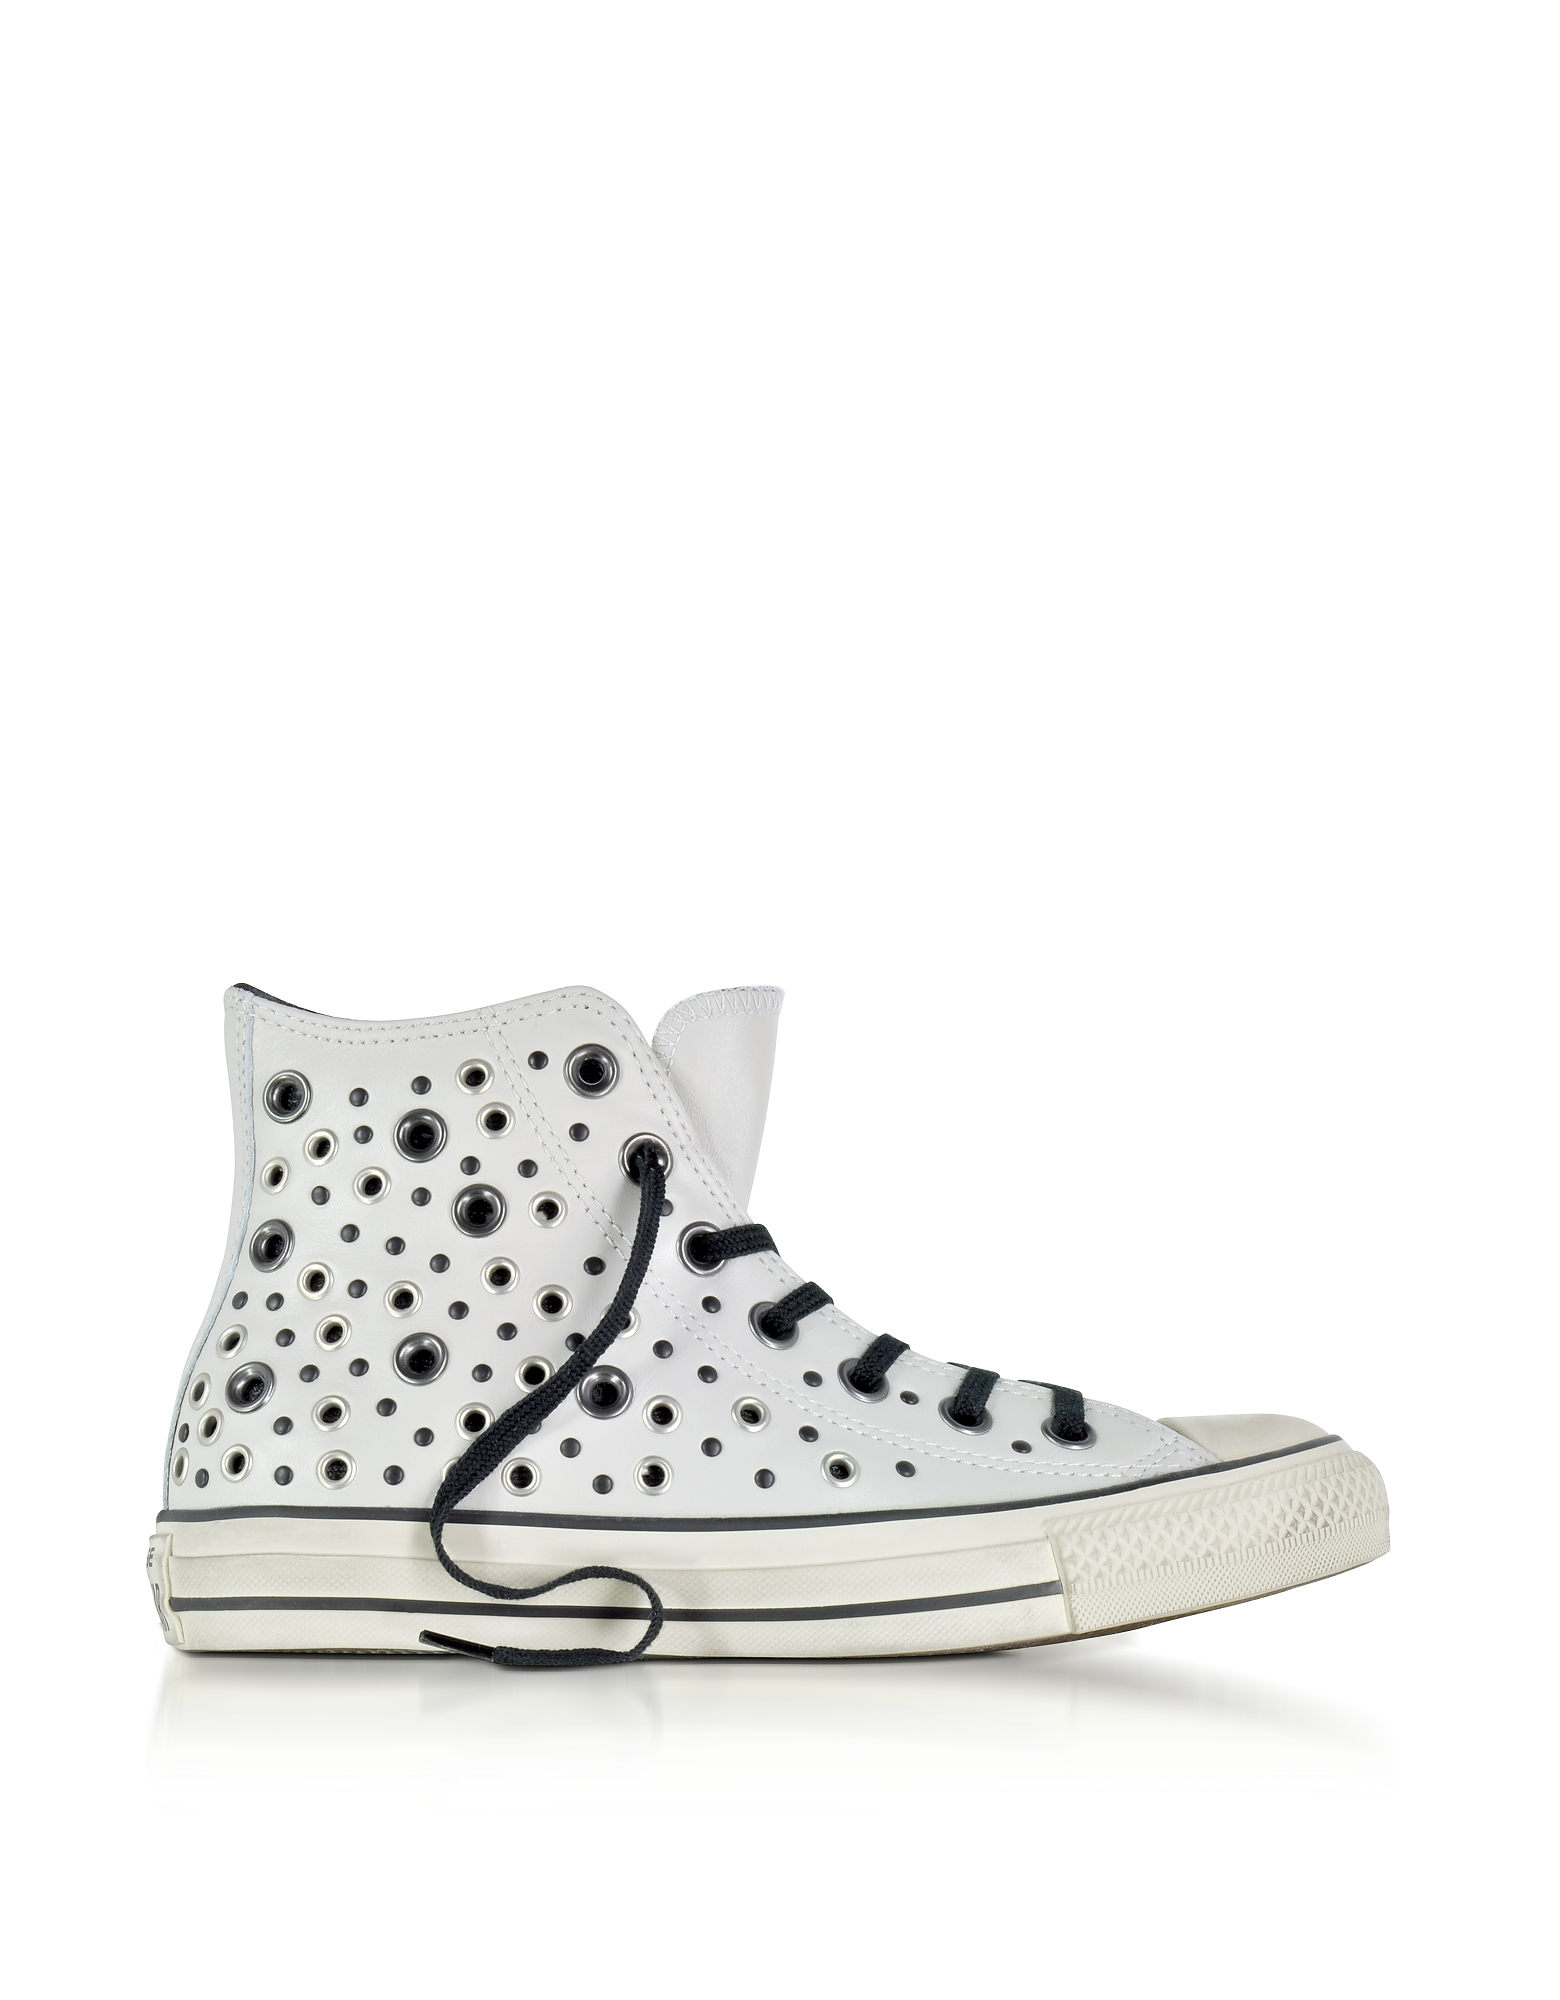 Converse Limited Edition Shoes, Chuck Taylor All Star High Distressed Pale Putty Leather Sneakers w/